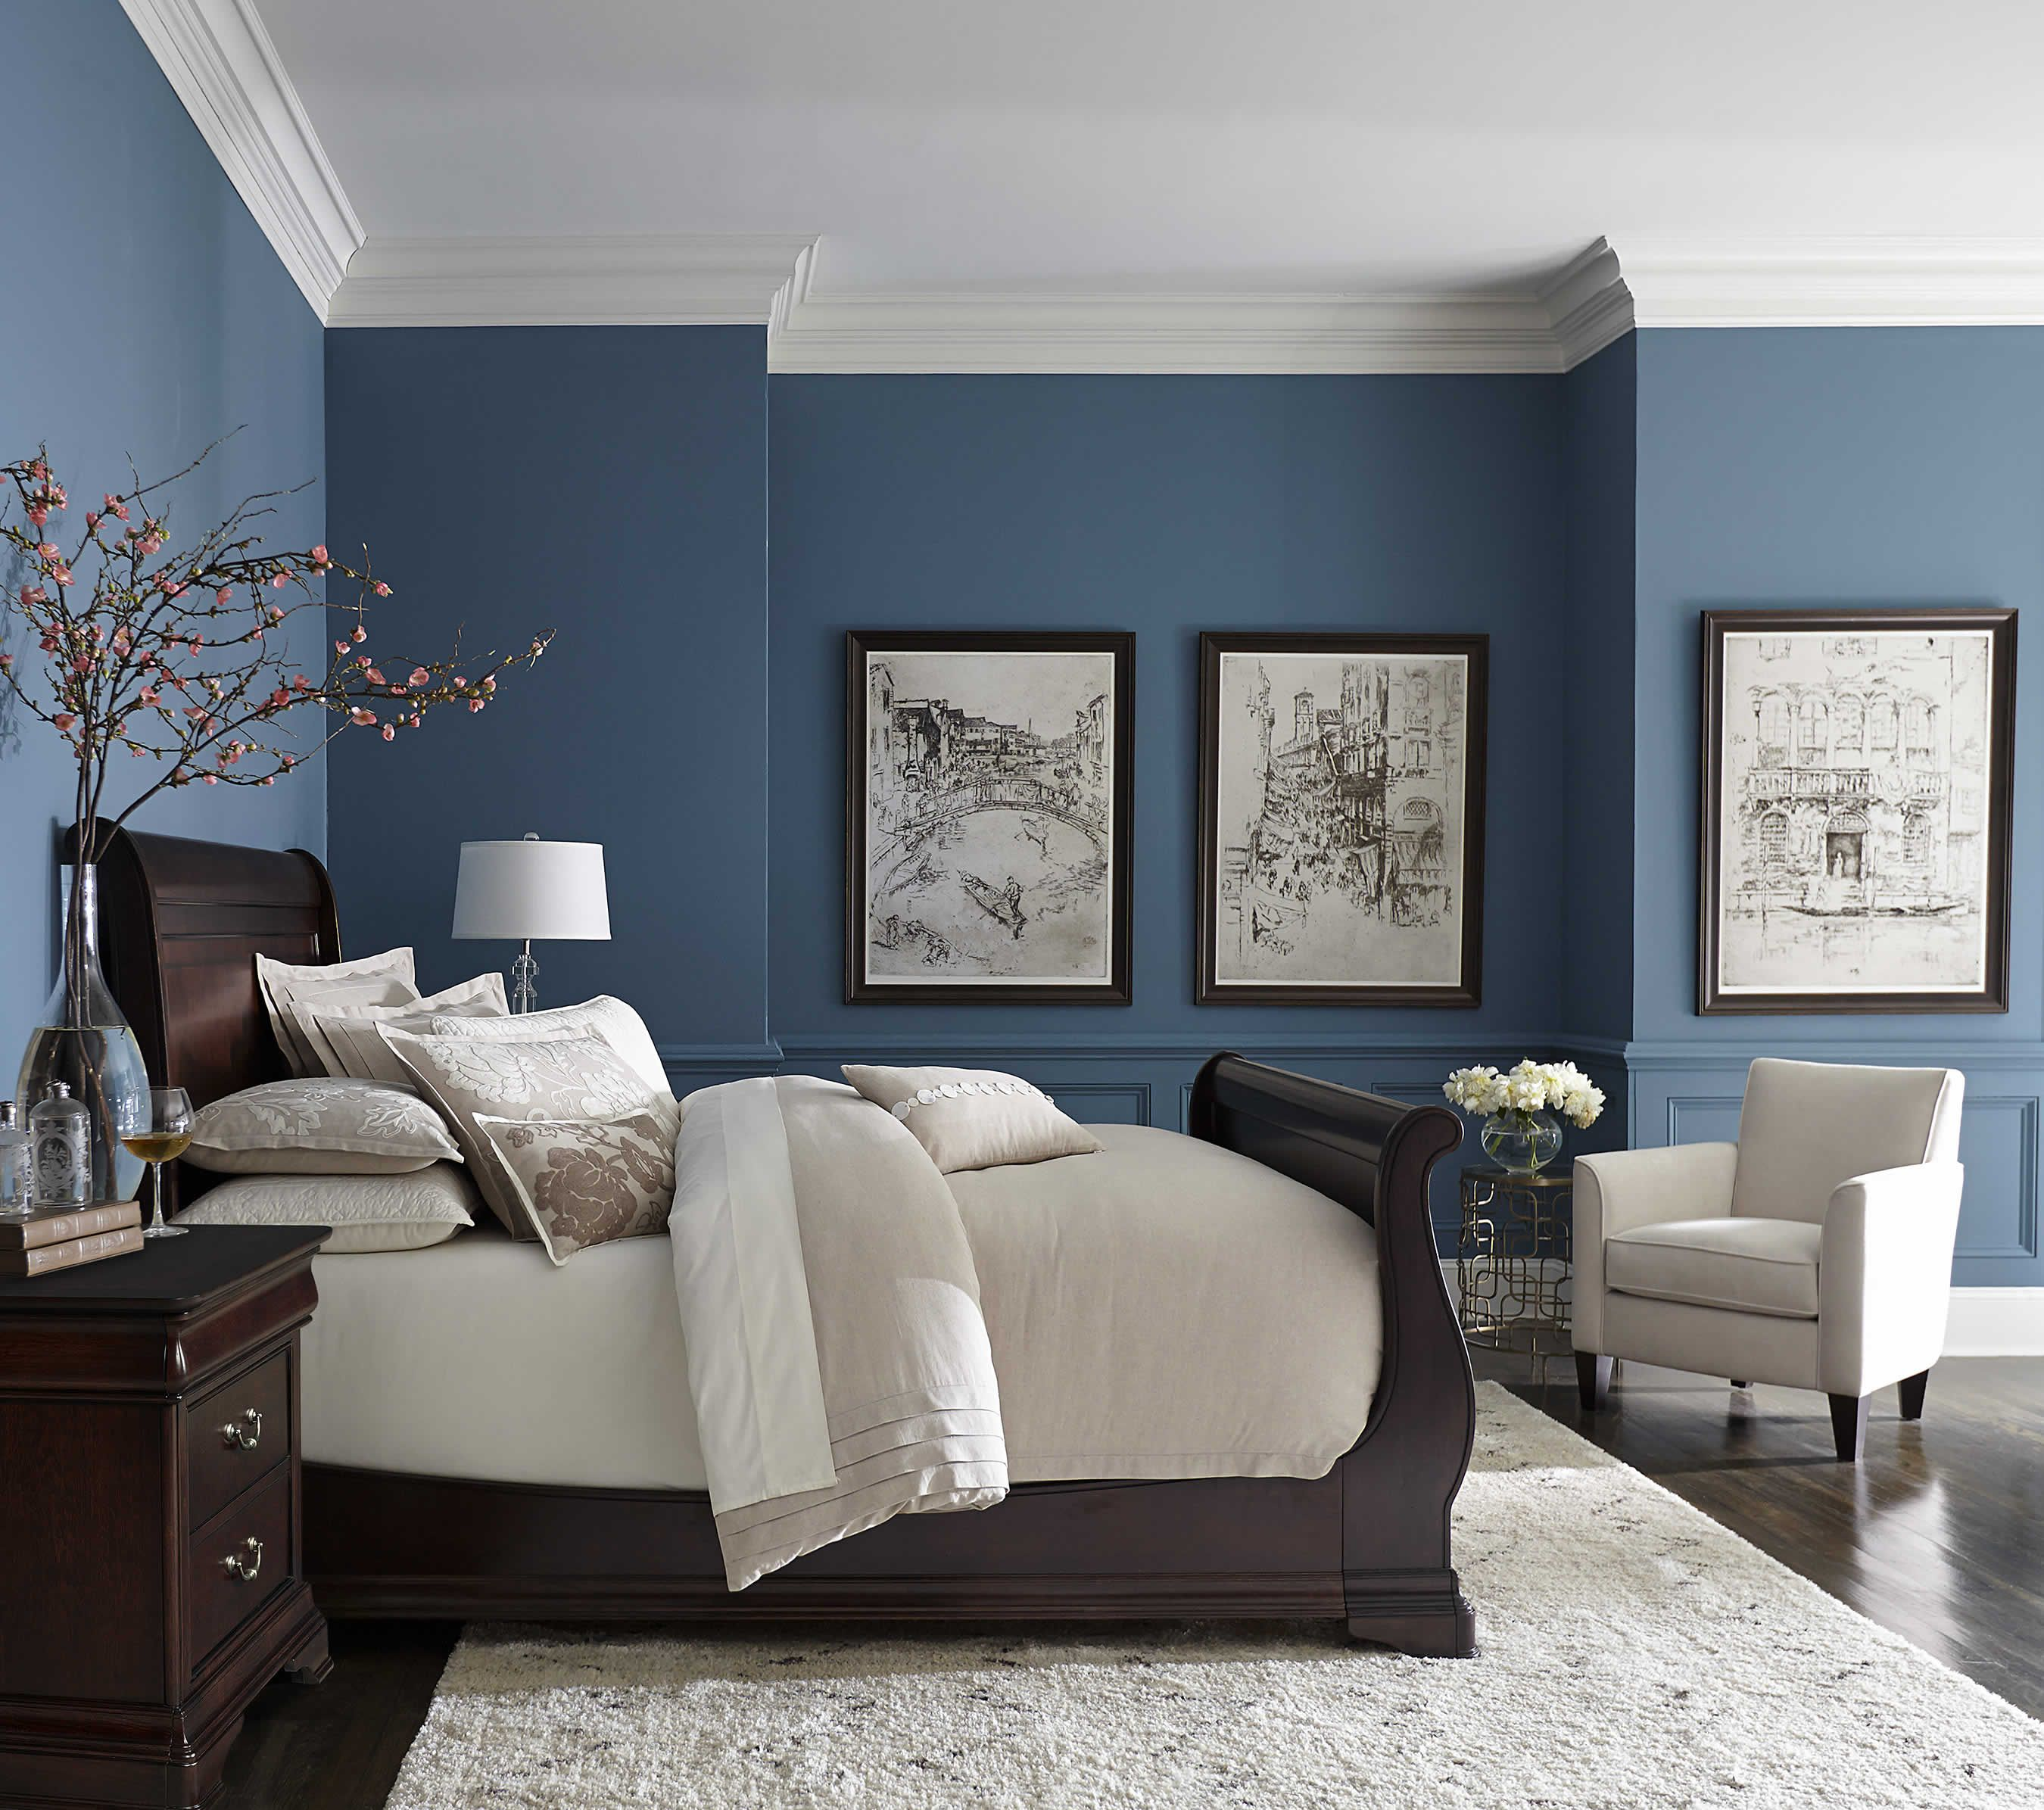 Bedroom Paint: Pretty Blue Color With White Crown Molding